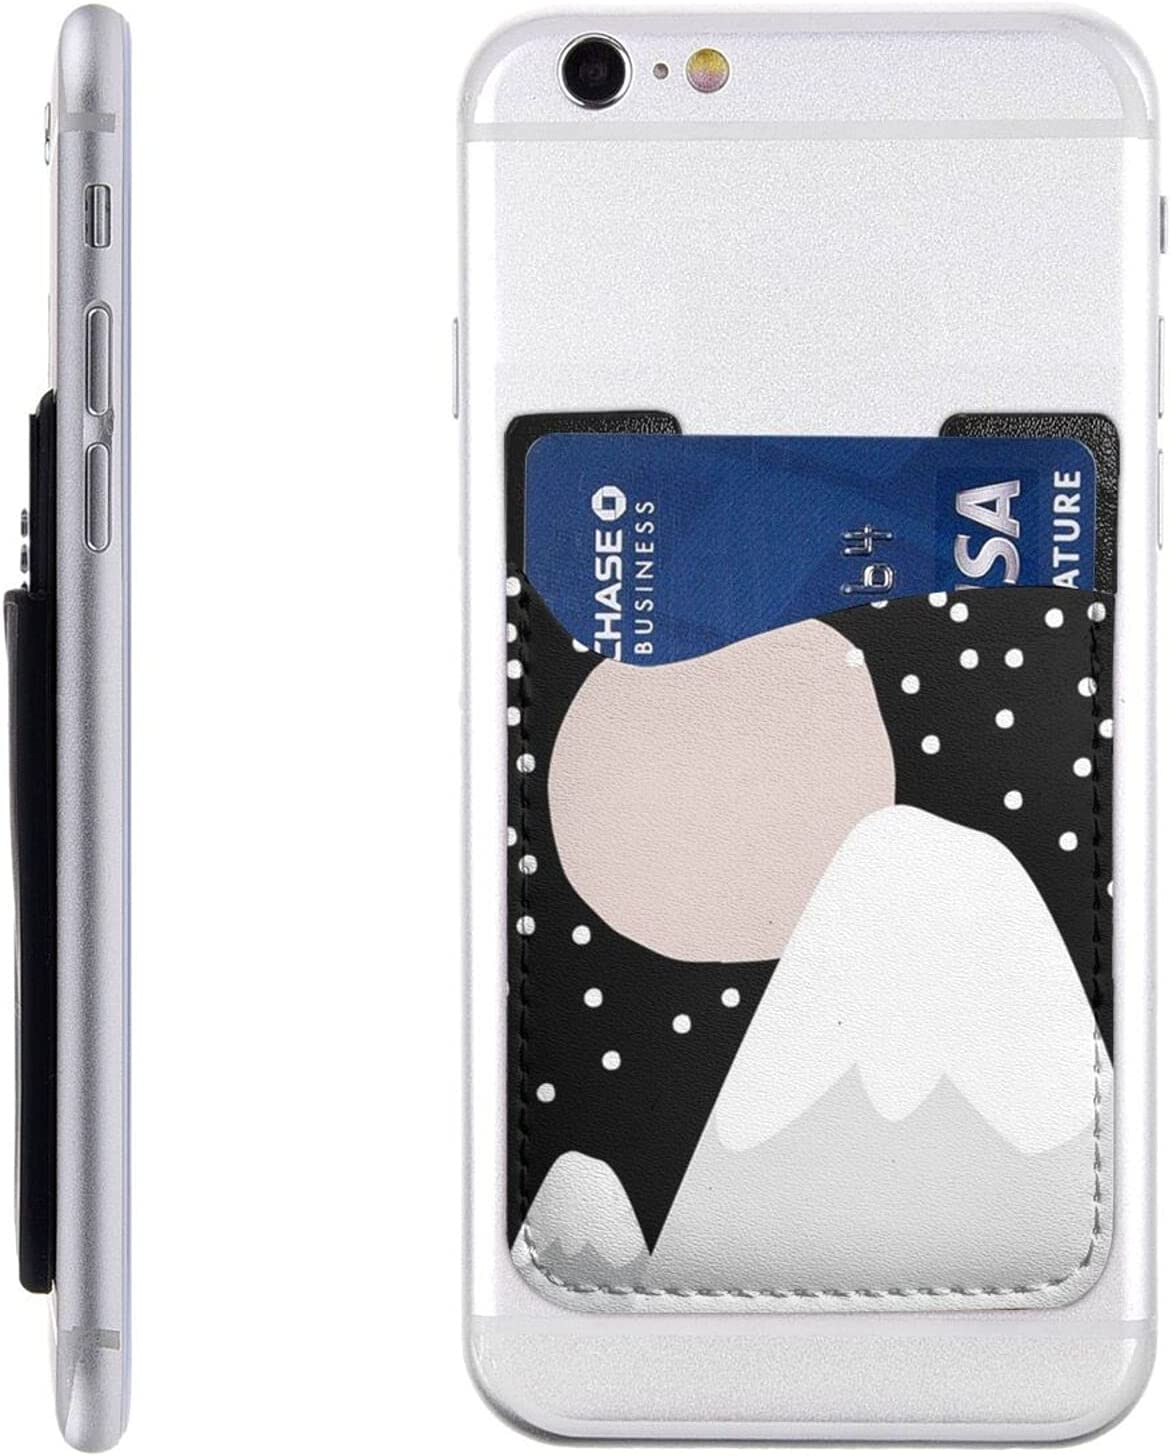 Mountain Phone Card Holder Cell Oakland Mall Wallet On Sales of SALE items from new works Stick Sleev